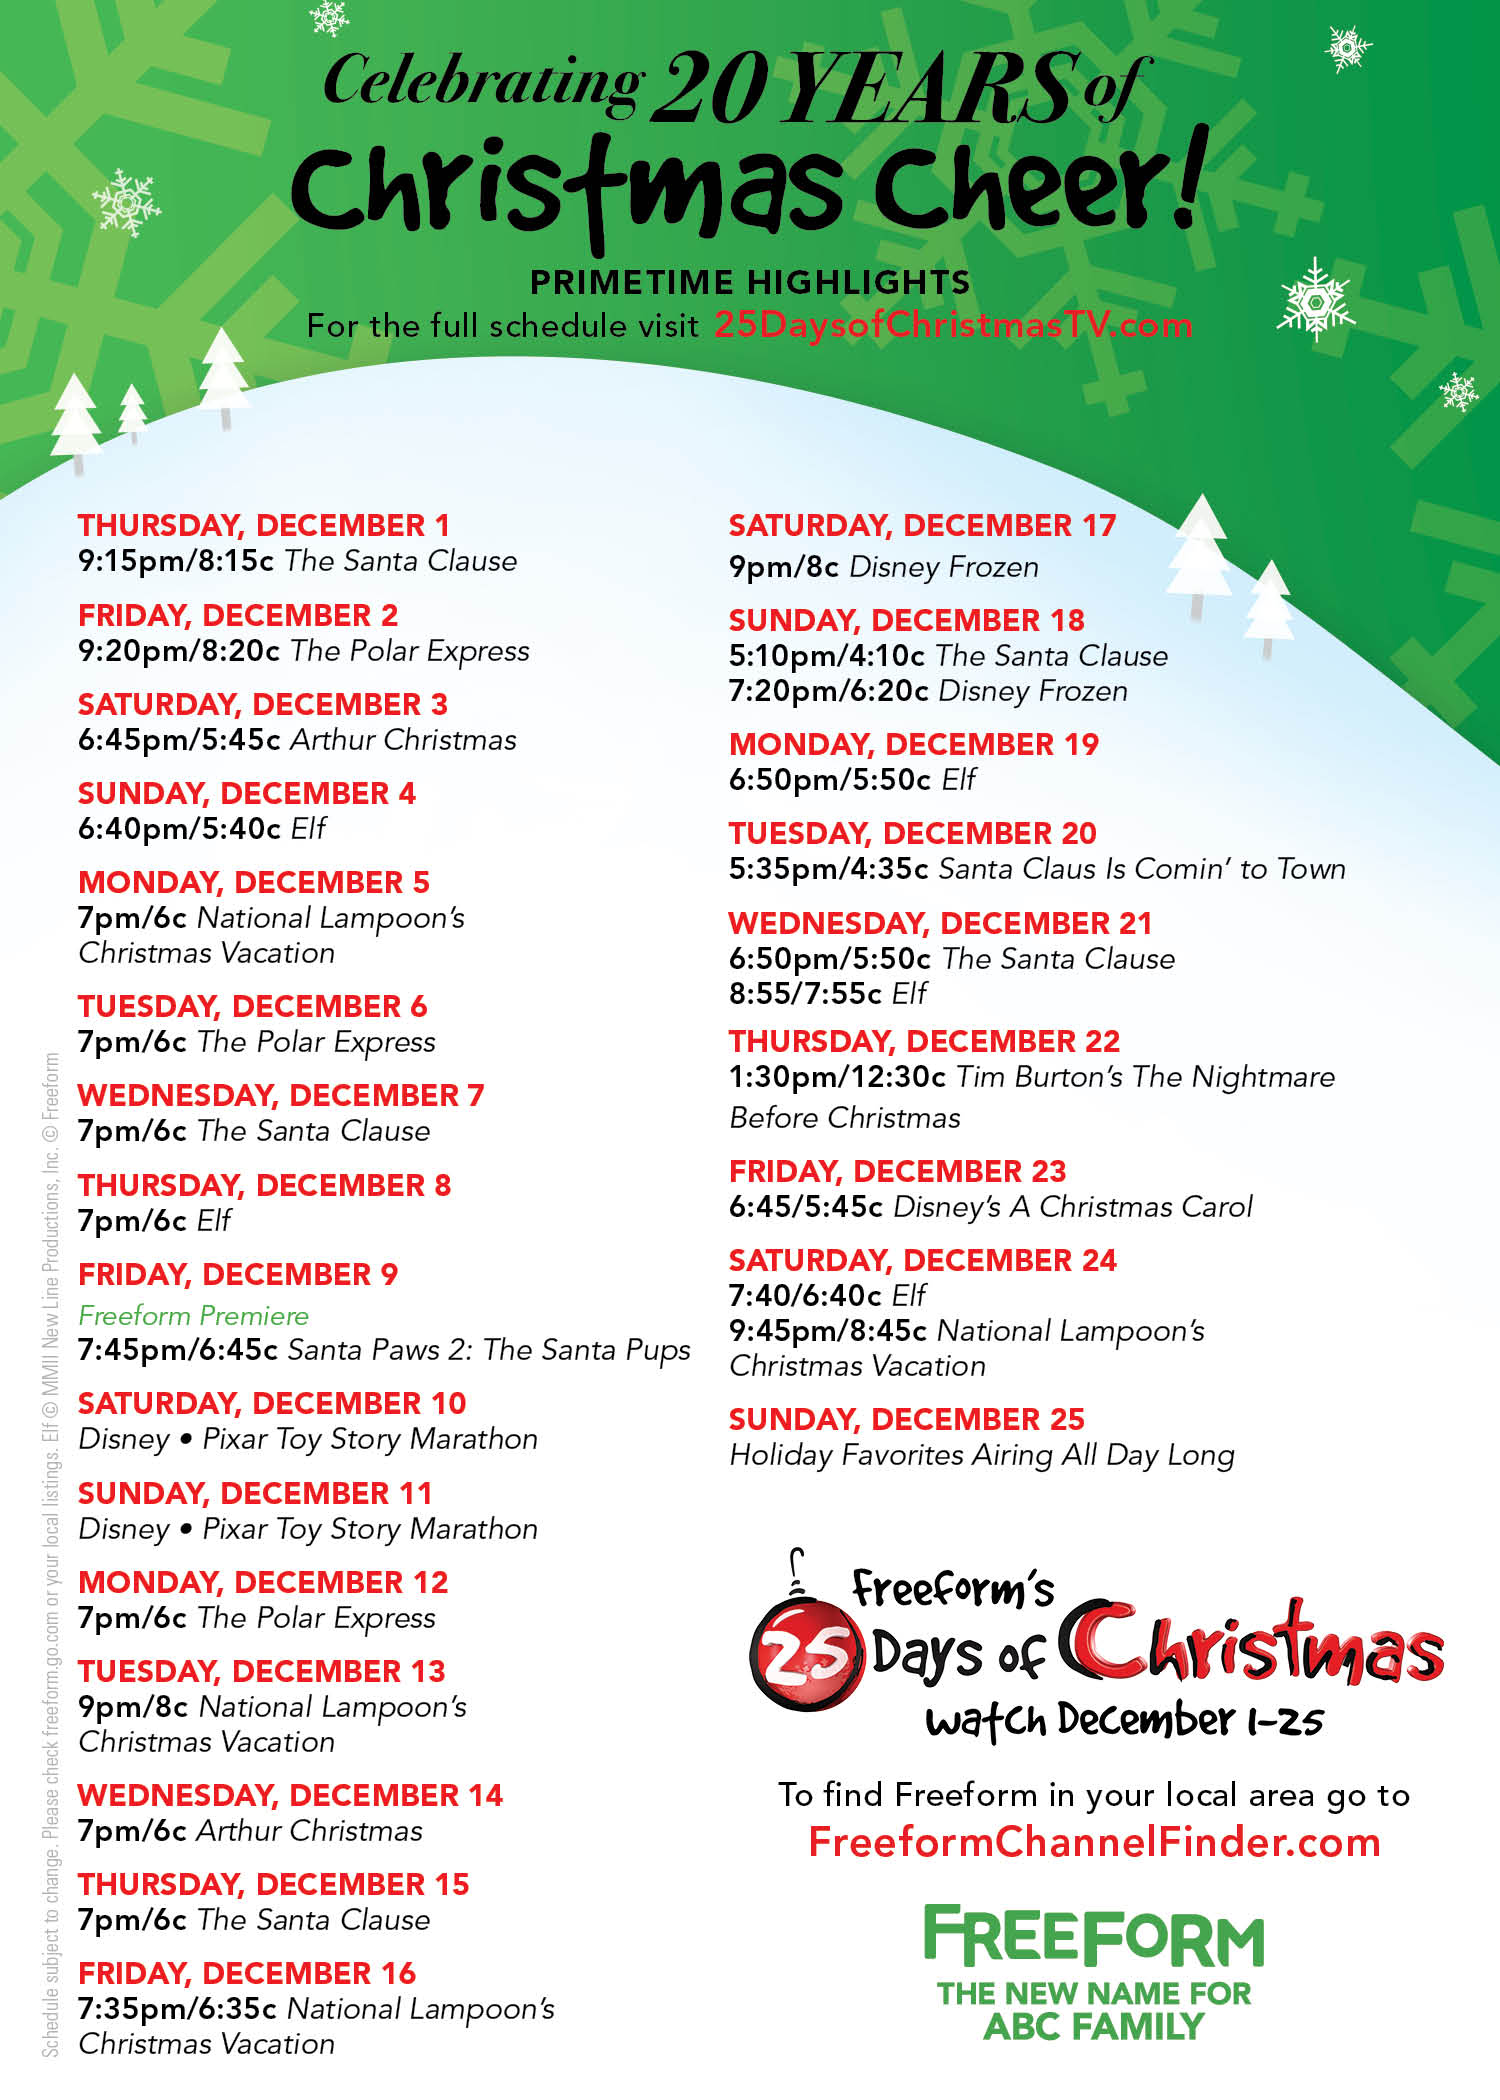 25 Days of Christmas - 25 Days Of Christmas Has Everything We Could Wish For! Check Out The Schedule Here! - 1001